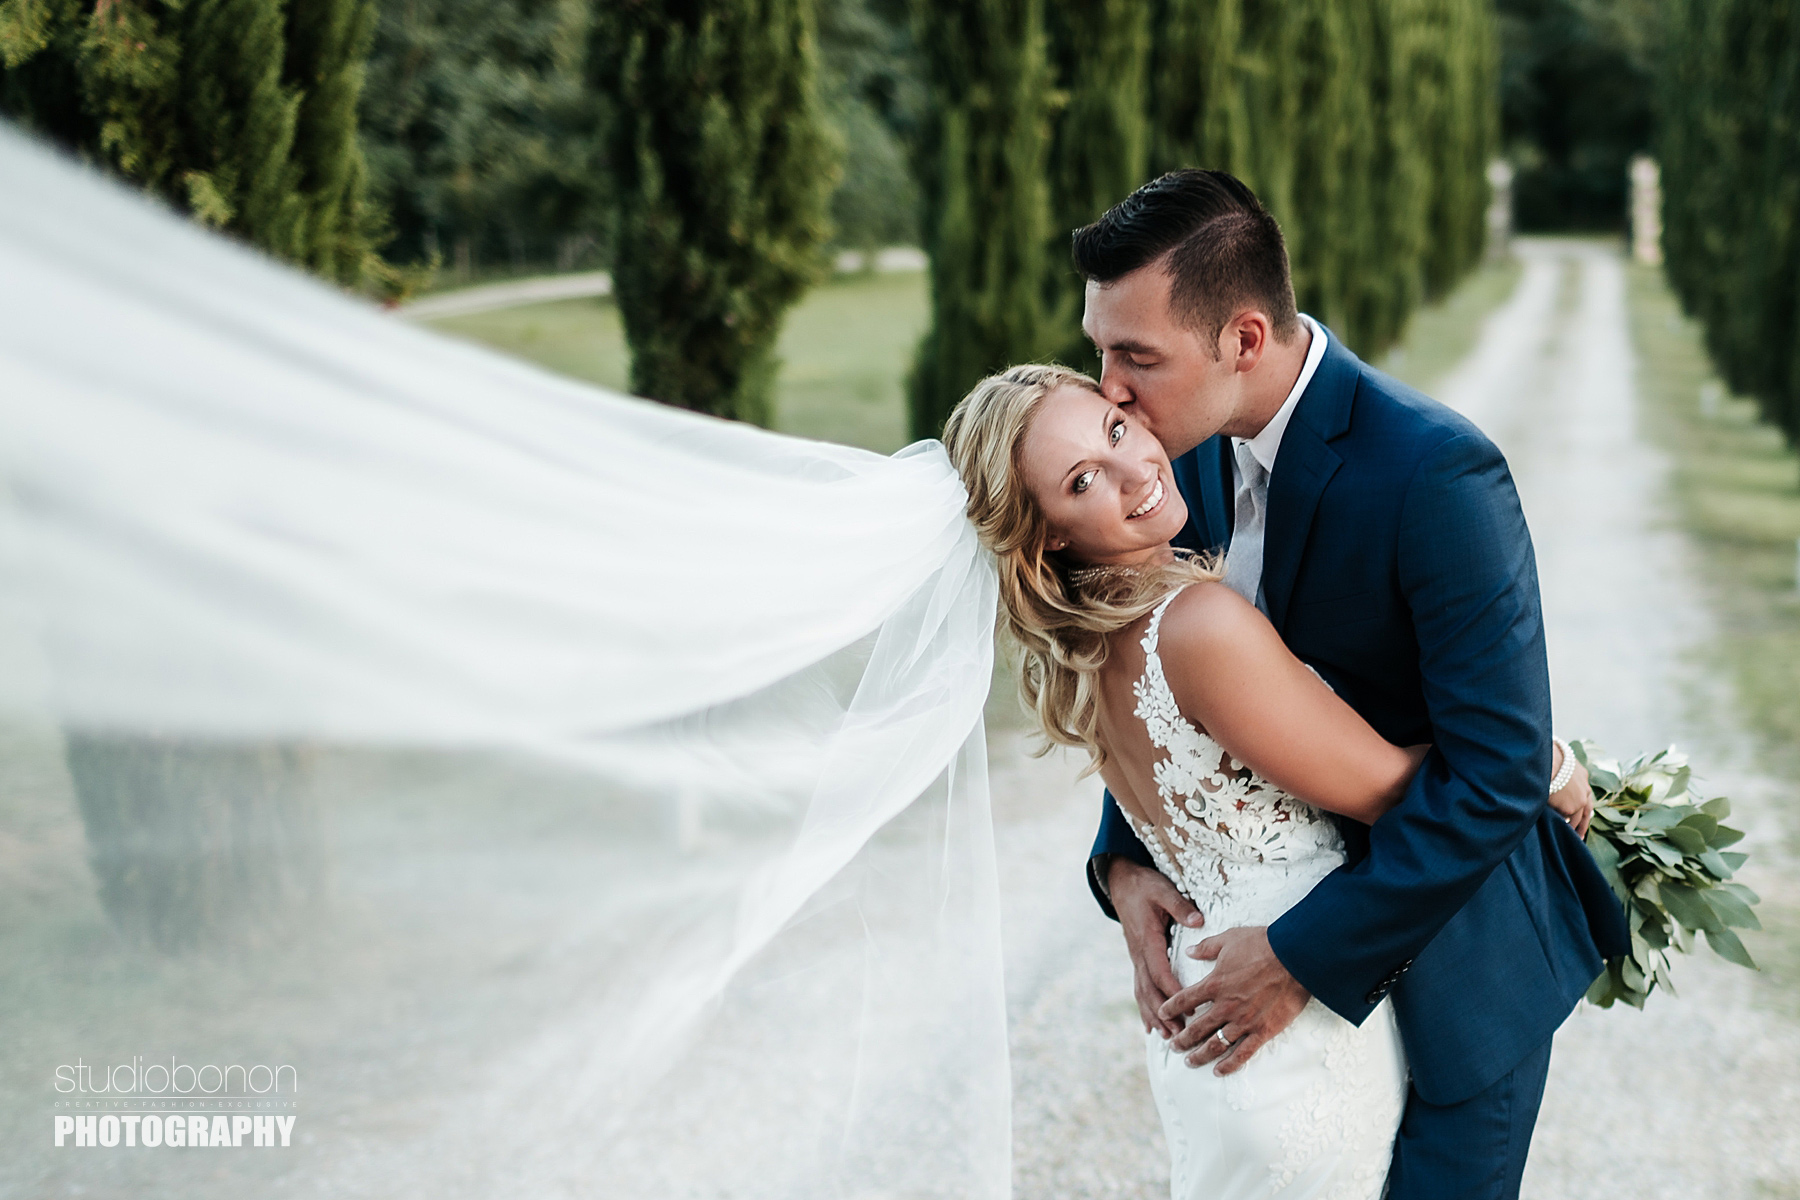 Wedding in Tuscany countryside at Tenuta Canto alla Moraia. Photo by the wedding photographers in Tuscany based Florence Studio Bonon Photography.